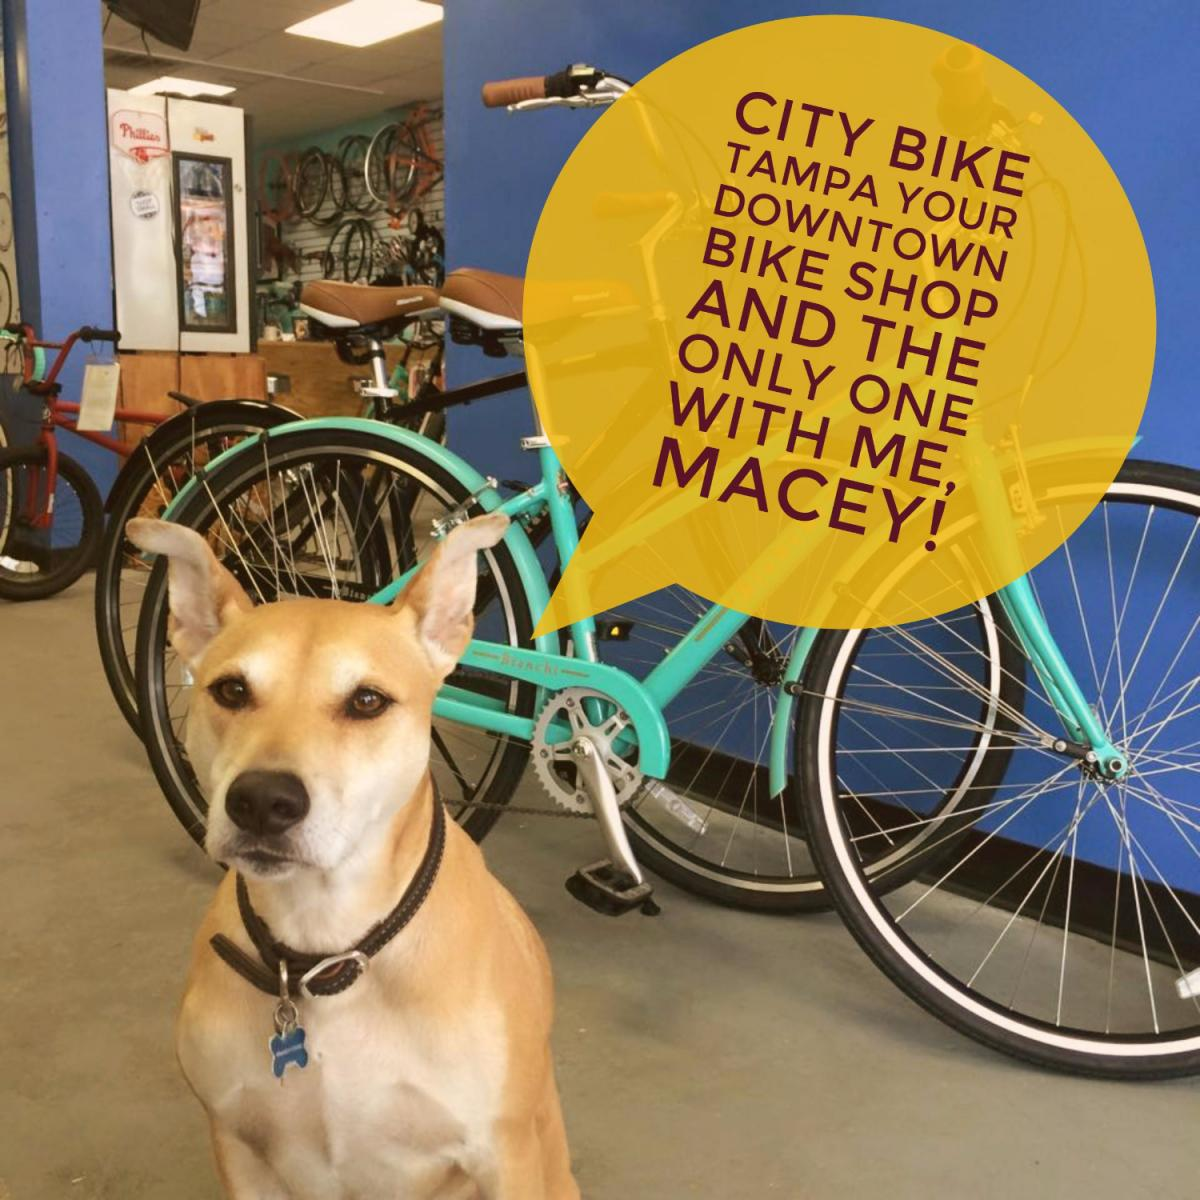 Bike Shop Tampa Fl 813 Spotlight City Bike Tampa Your Downtown Bike Shop